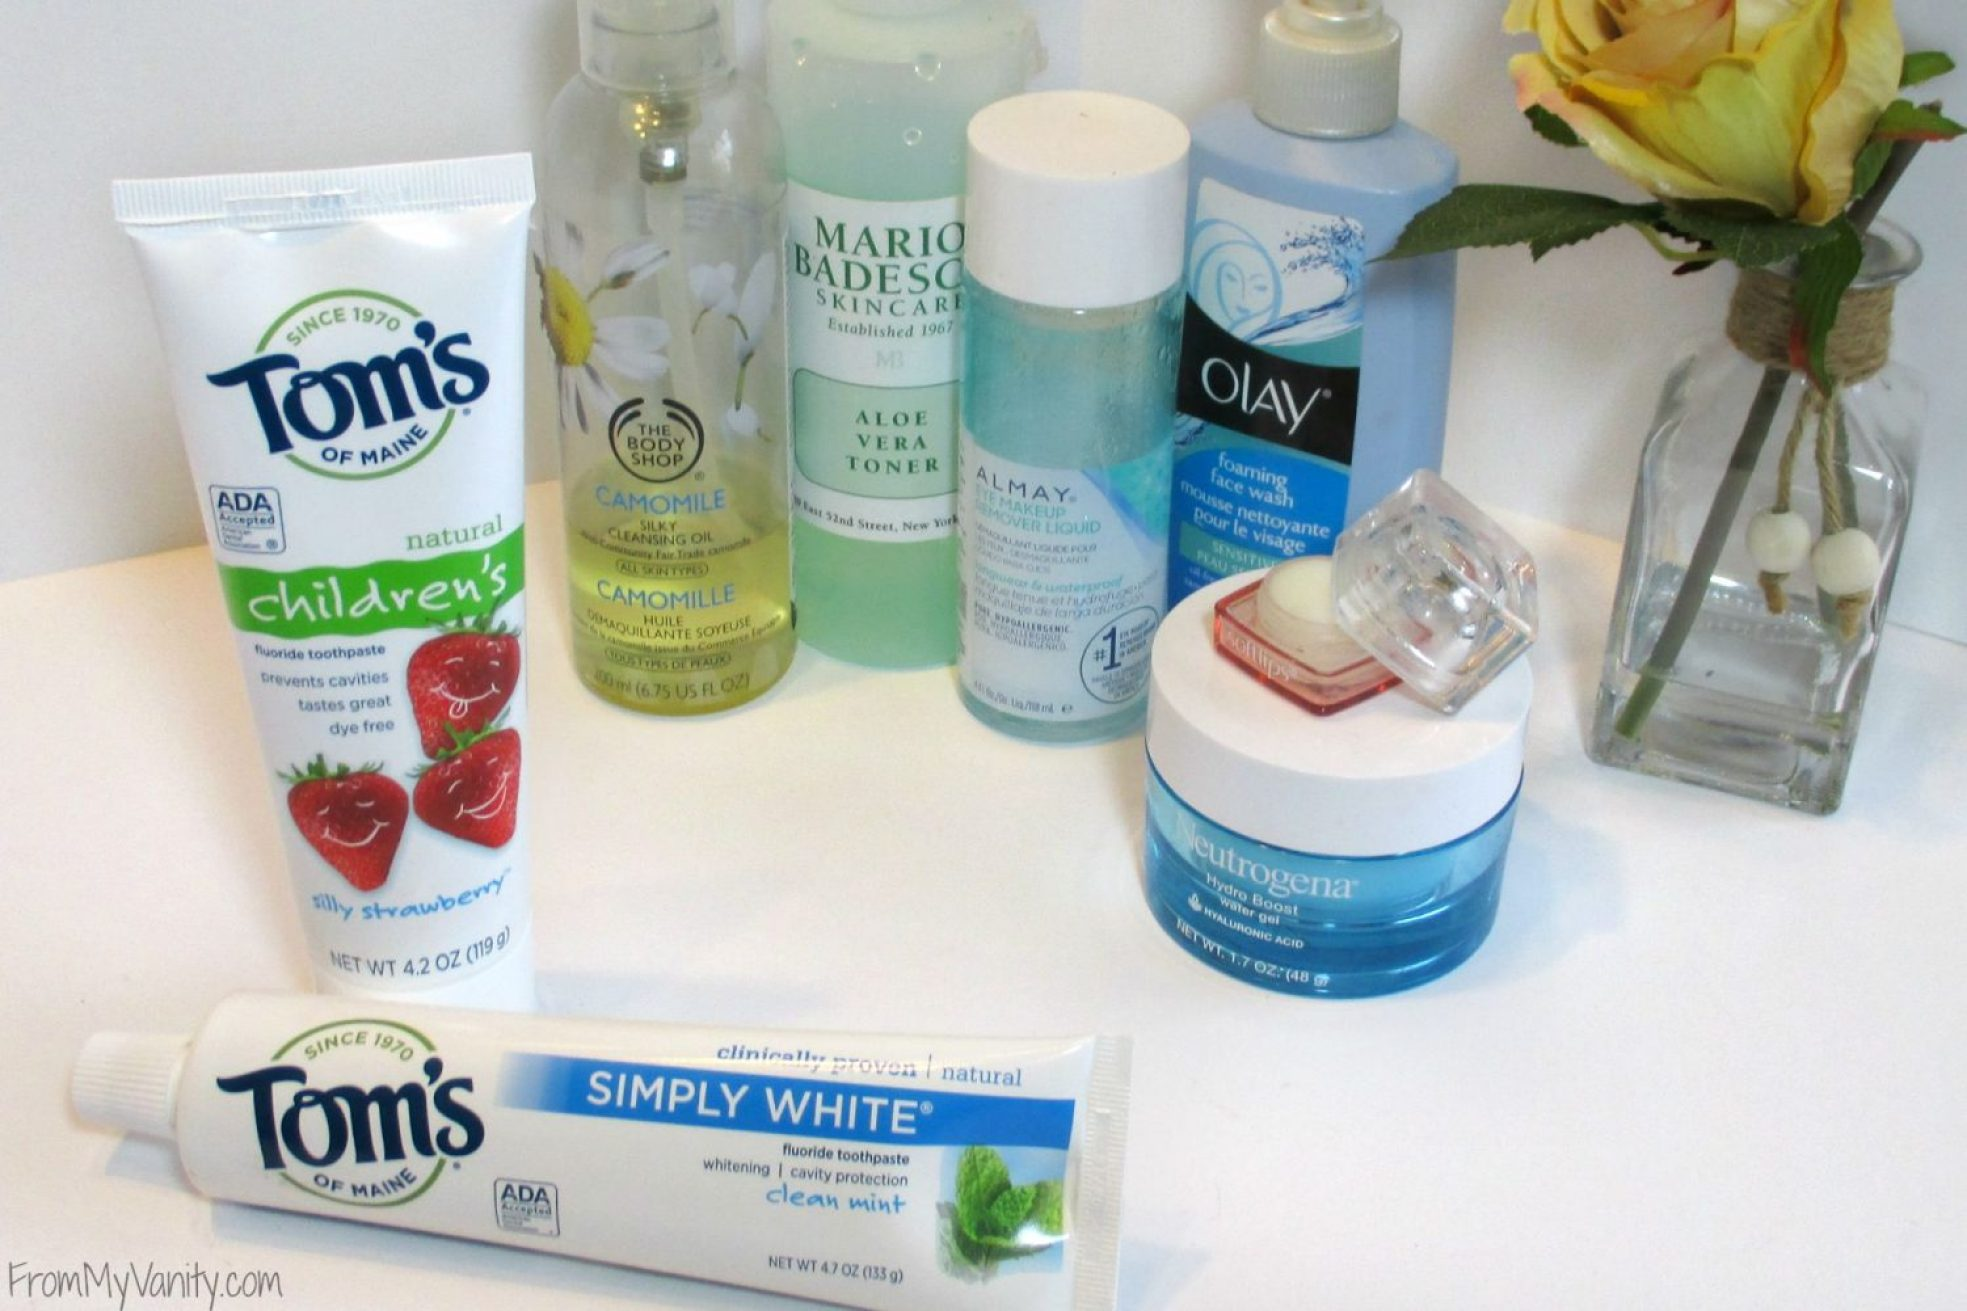 My Night Time Routine with Tom's of Maine // Products // From My Vanity #naturalgoodness